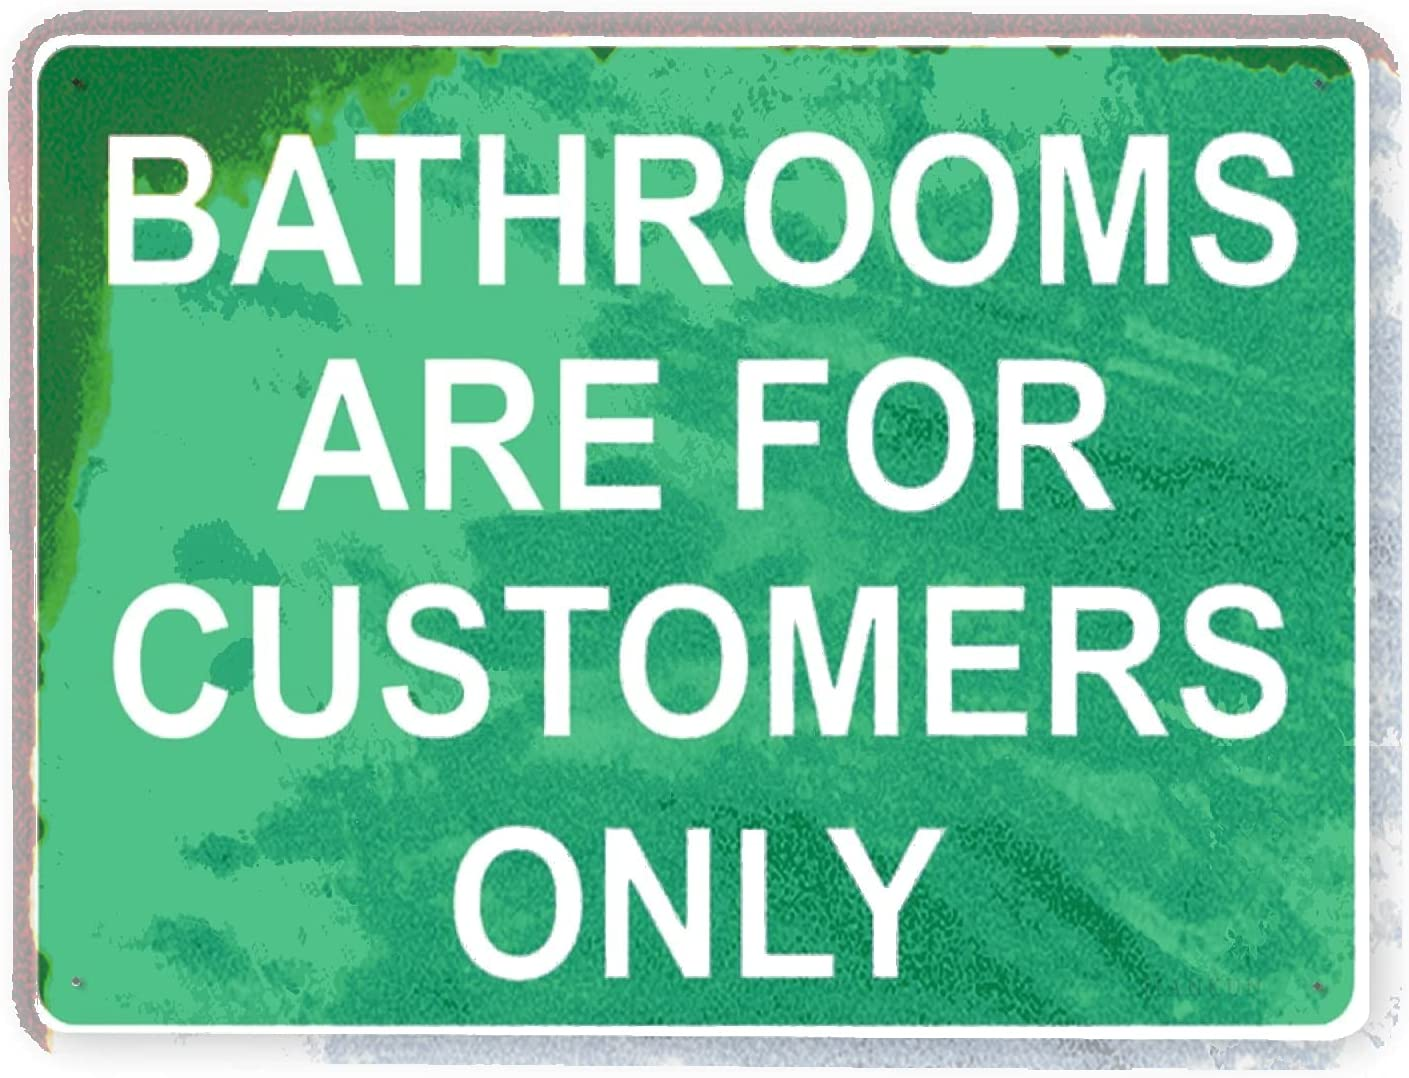 J.DXHYA Finally resale start Man Cave Decor 2 Challenge the lowest price bathroom Pieces Warning Rules Sign